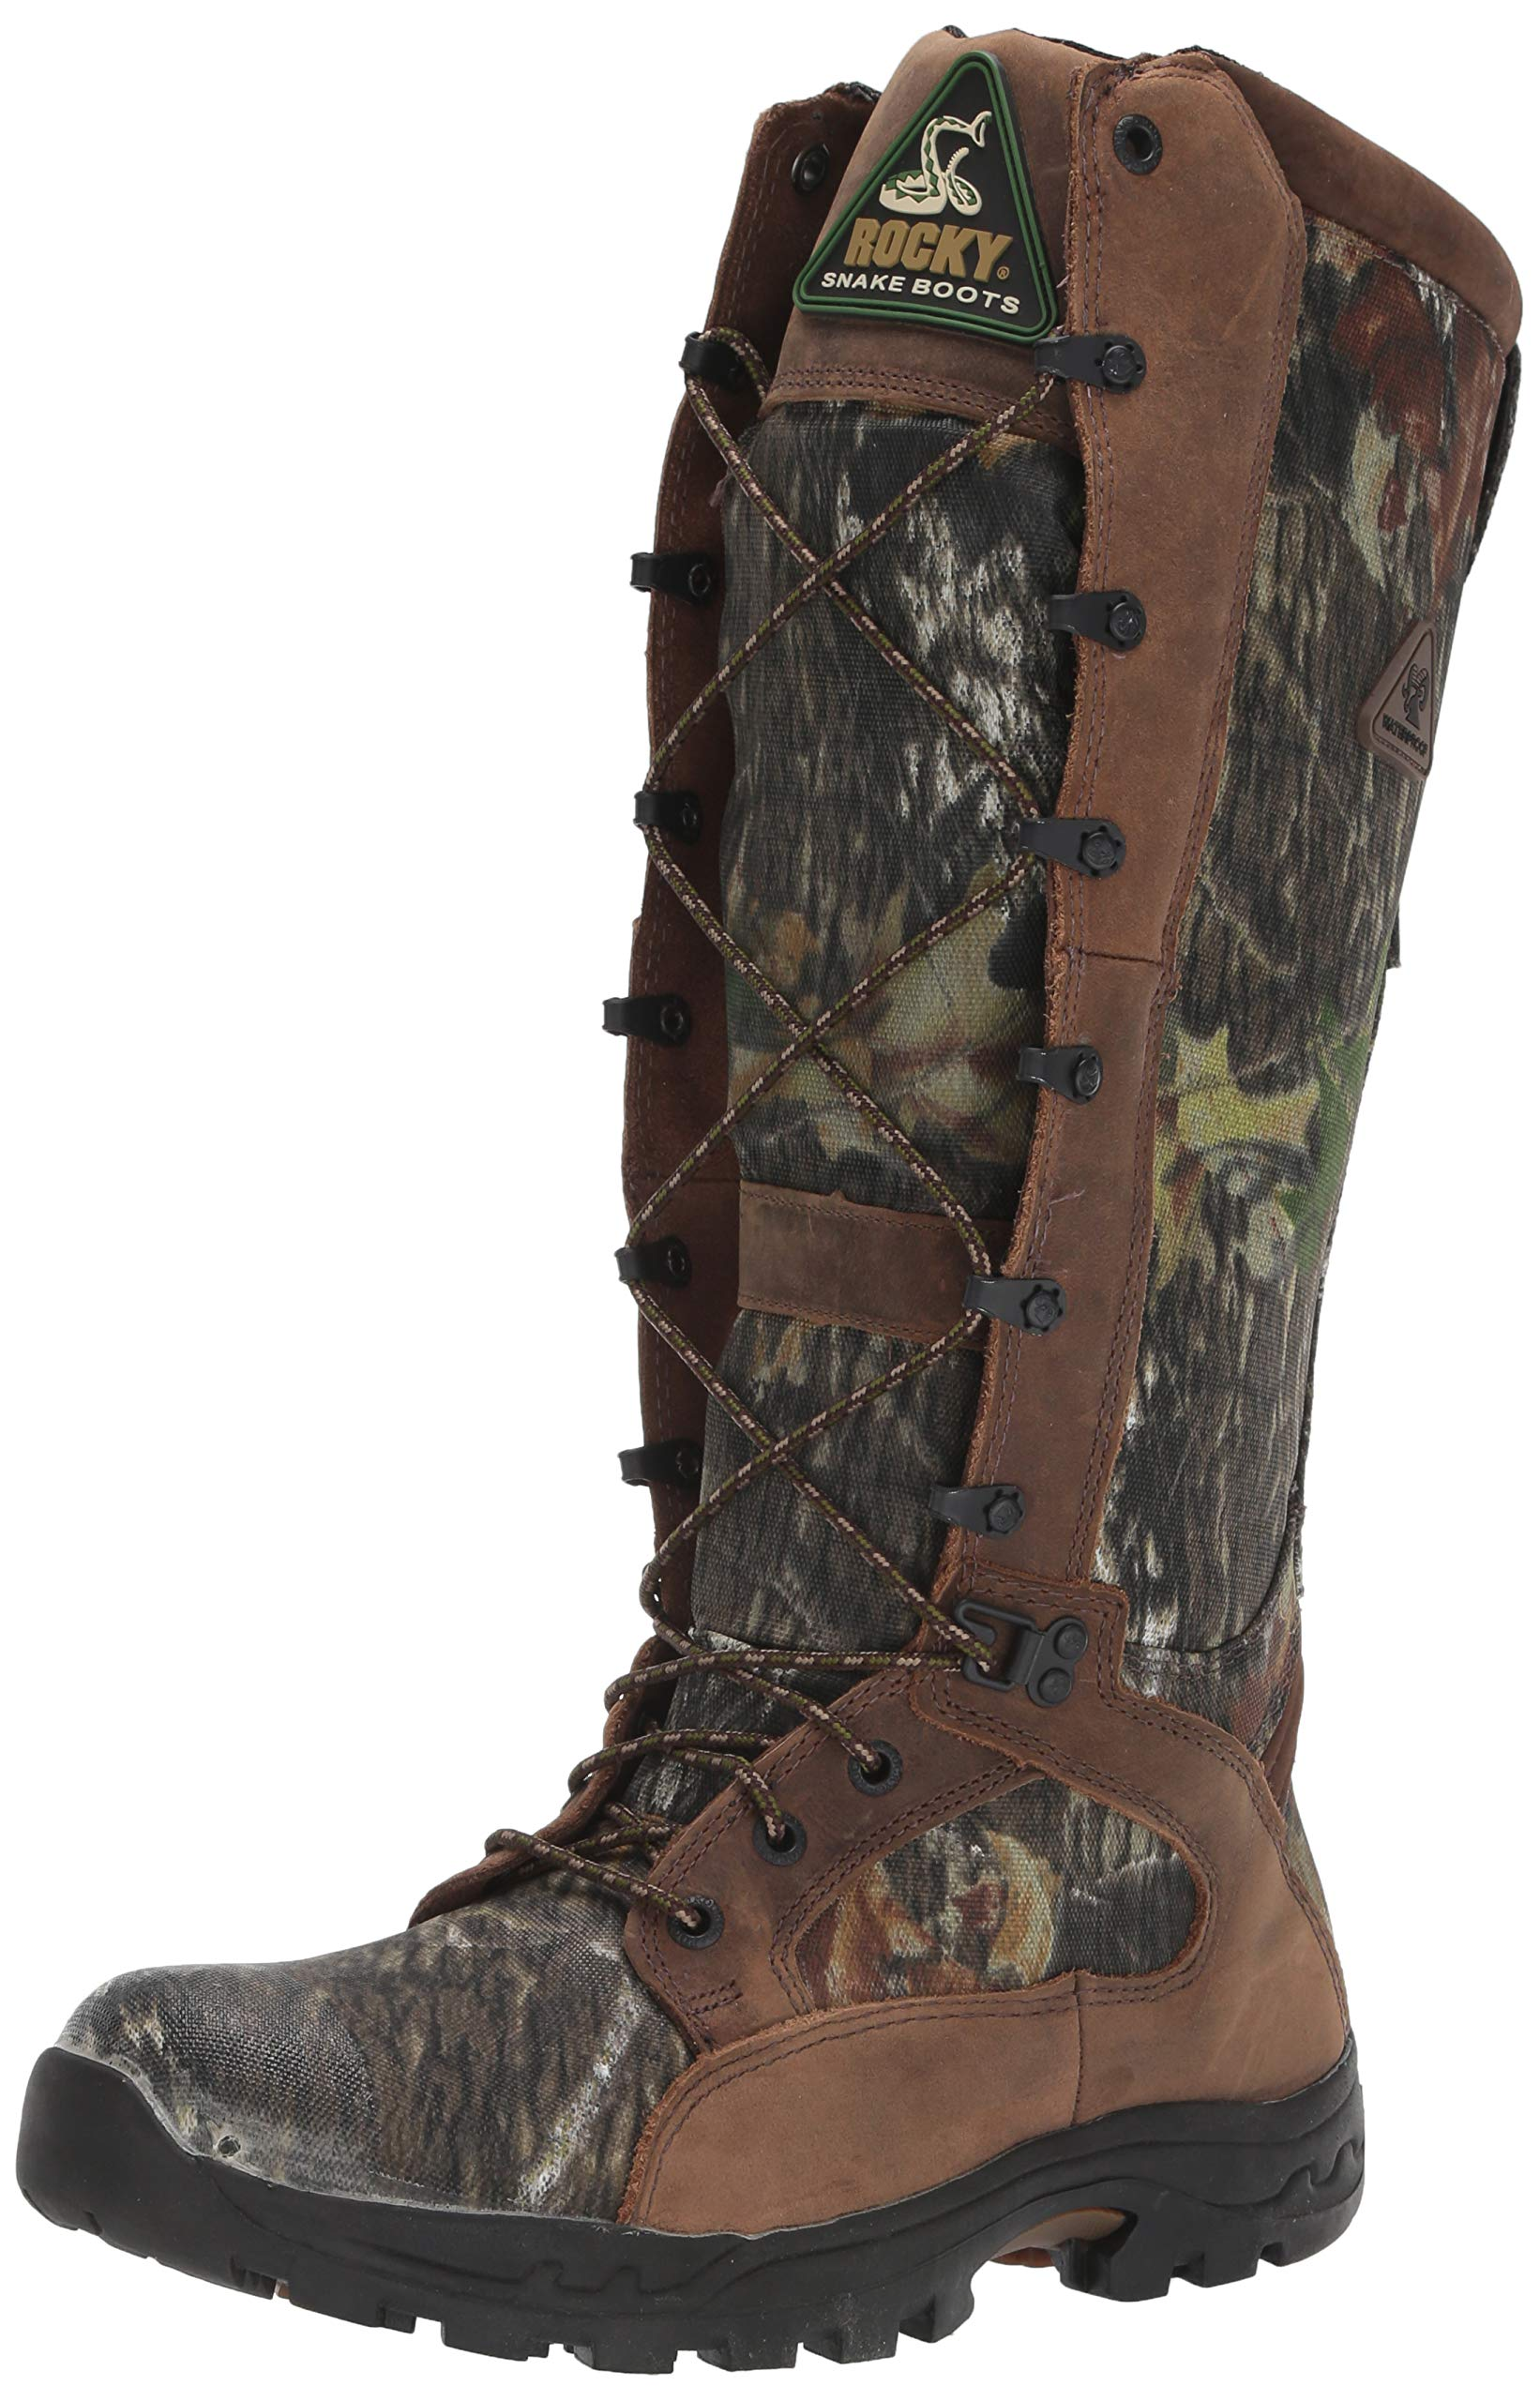 Rocky FQ0001570 Knee High Boot, Mossy Oak Breakup, 10.5 M US by ROCKY